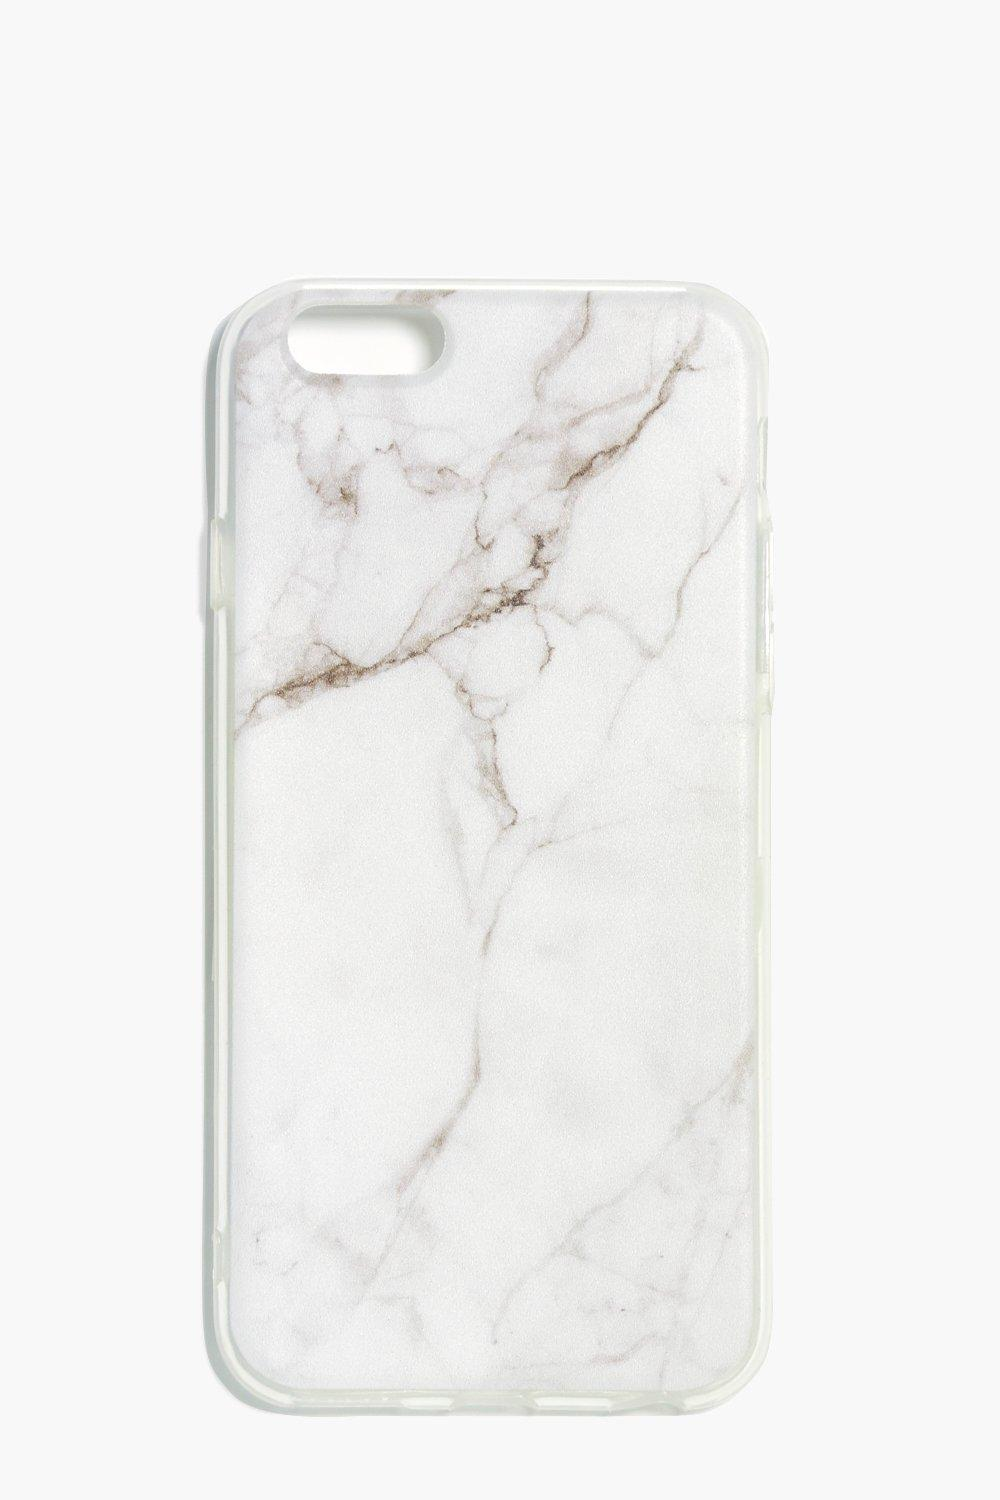 Marble iPhone 6 Case - white - White Marble iPhone